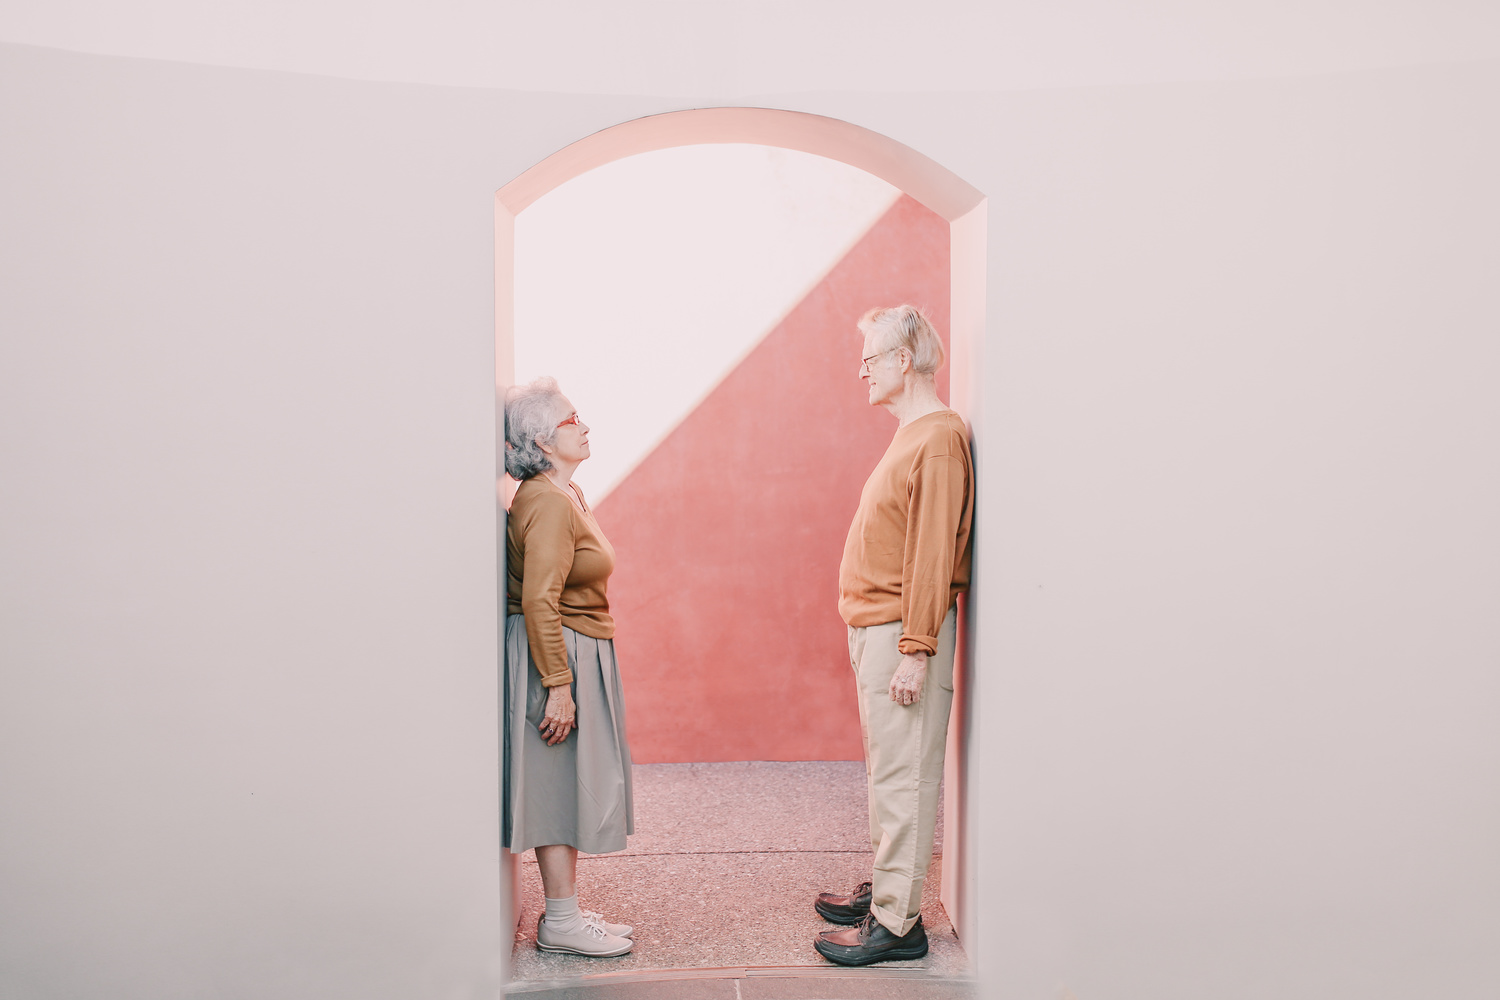 Elderly couple in an archway.